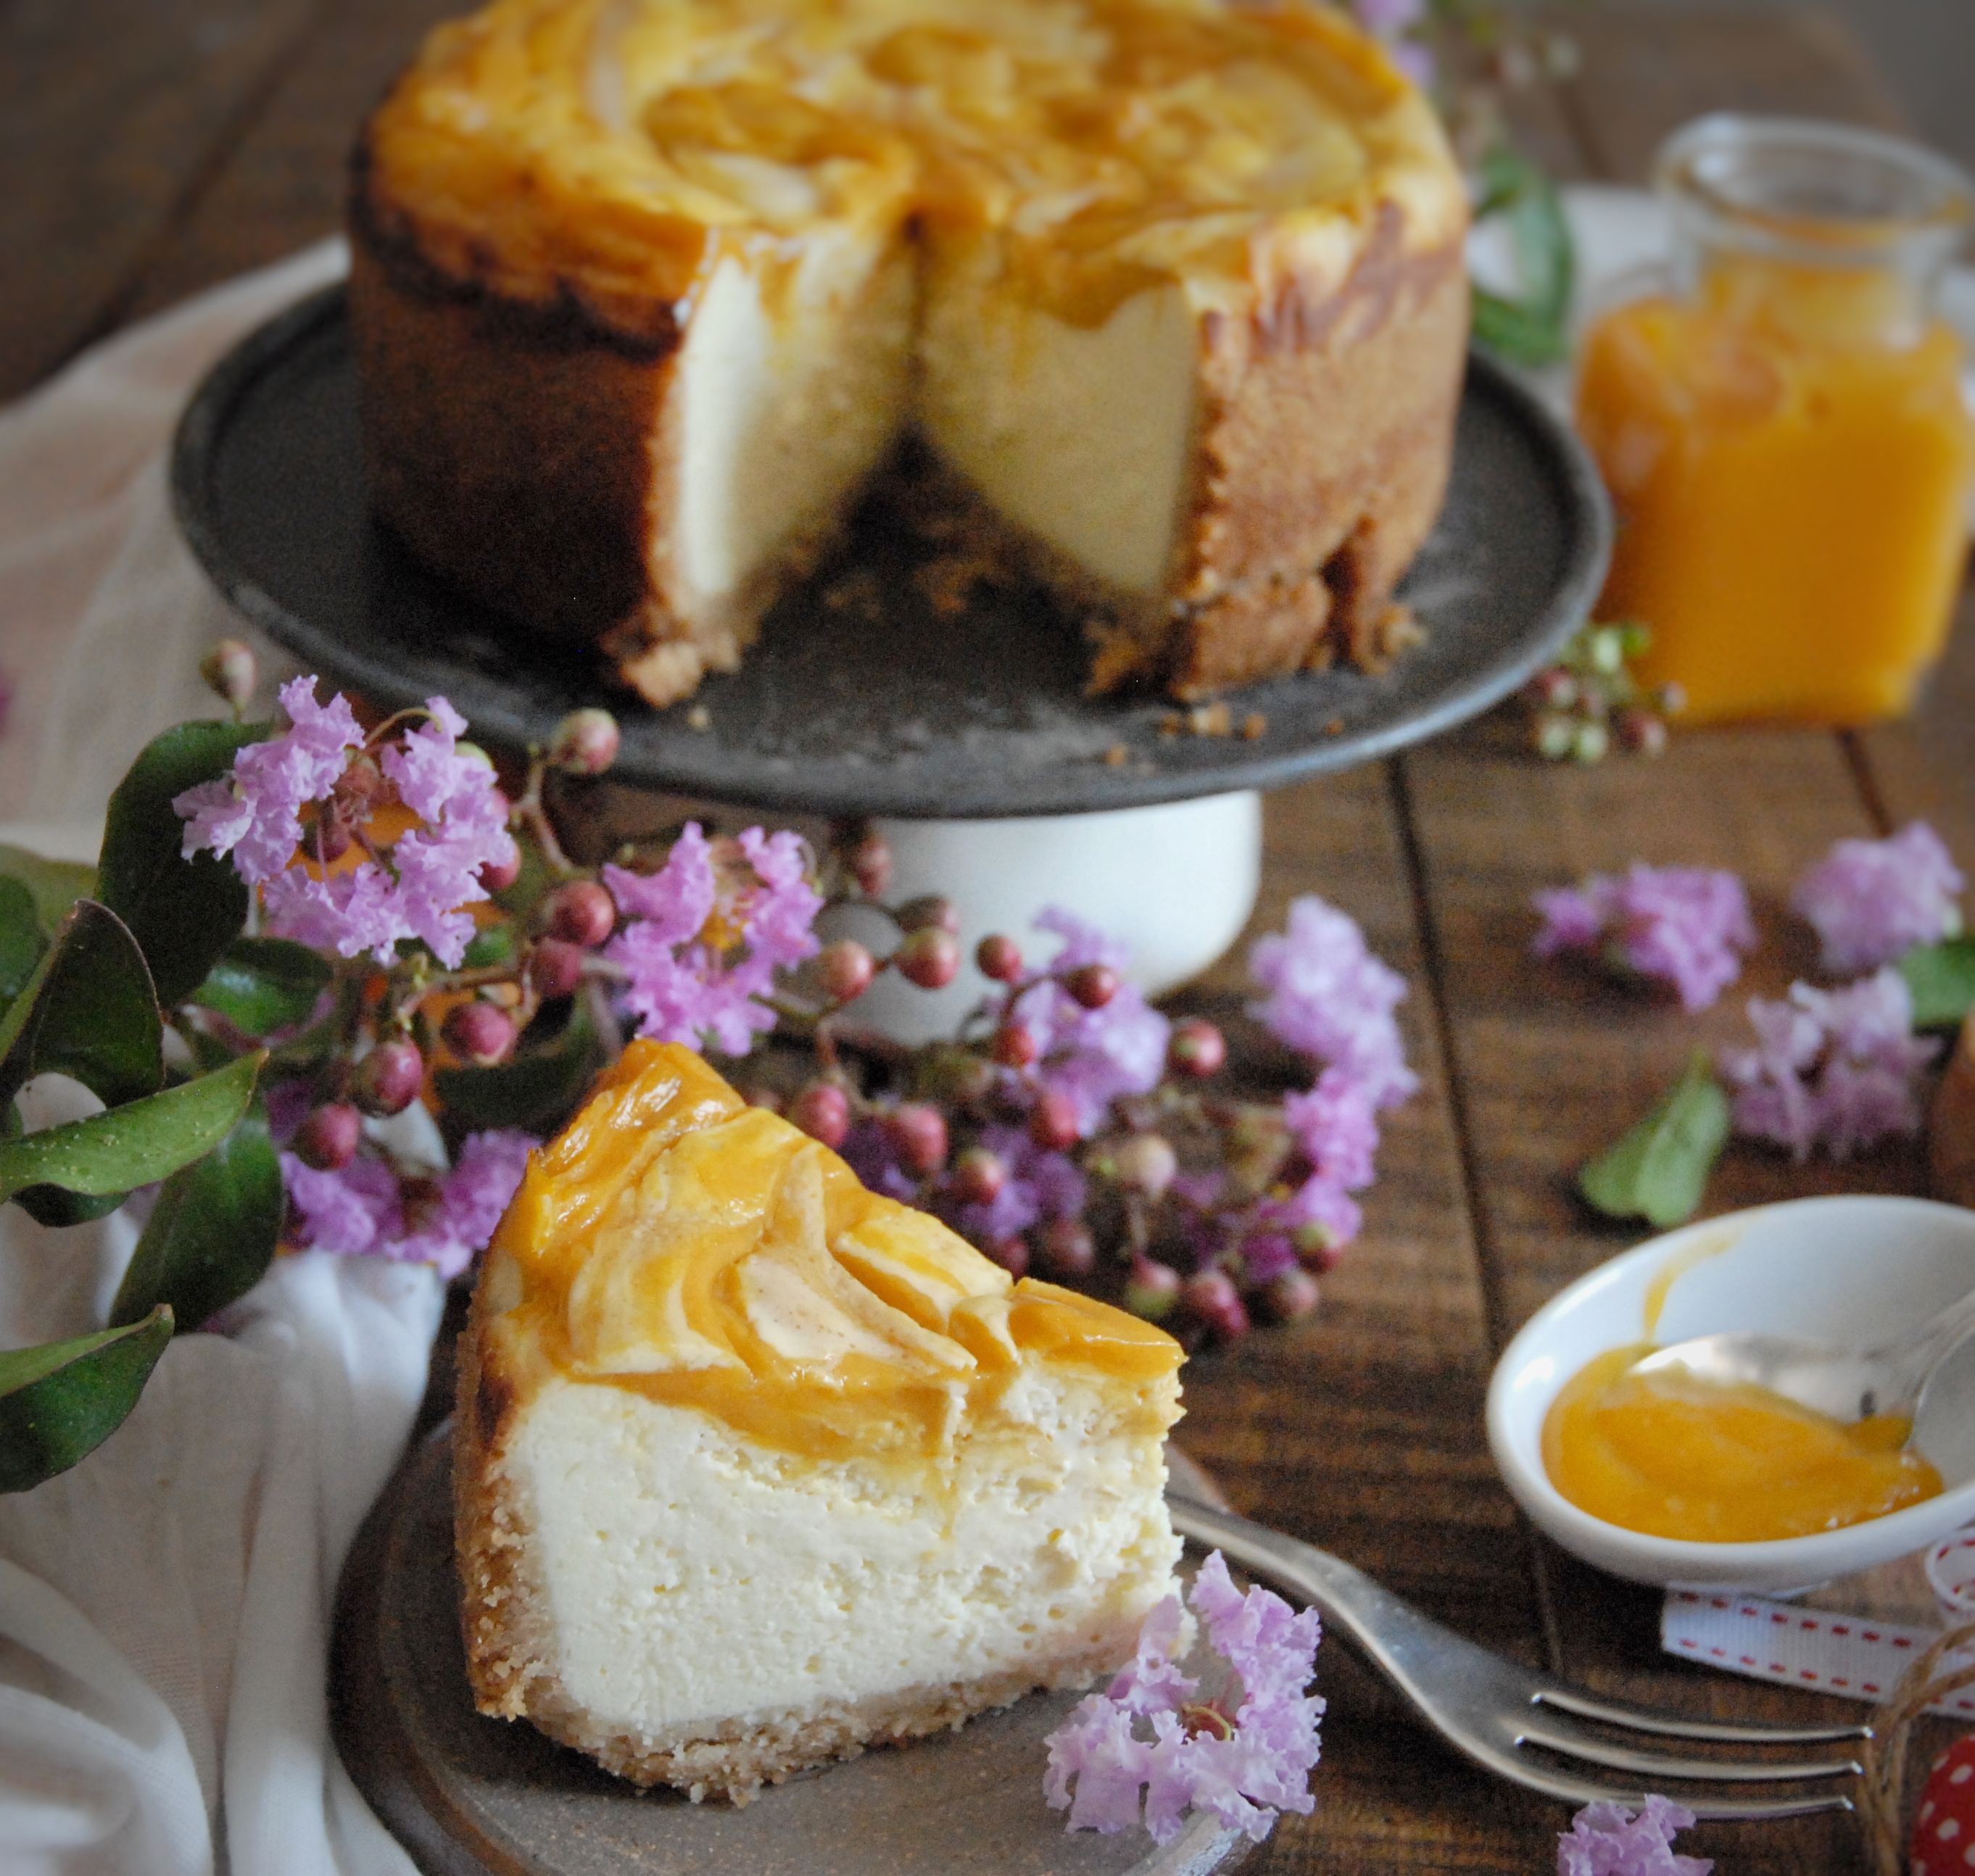 Ney York Cheesecake al mango